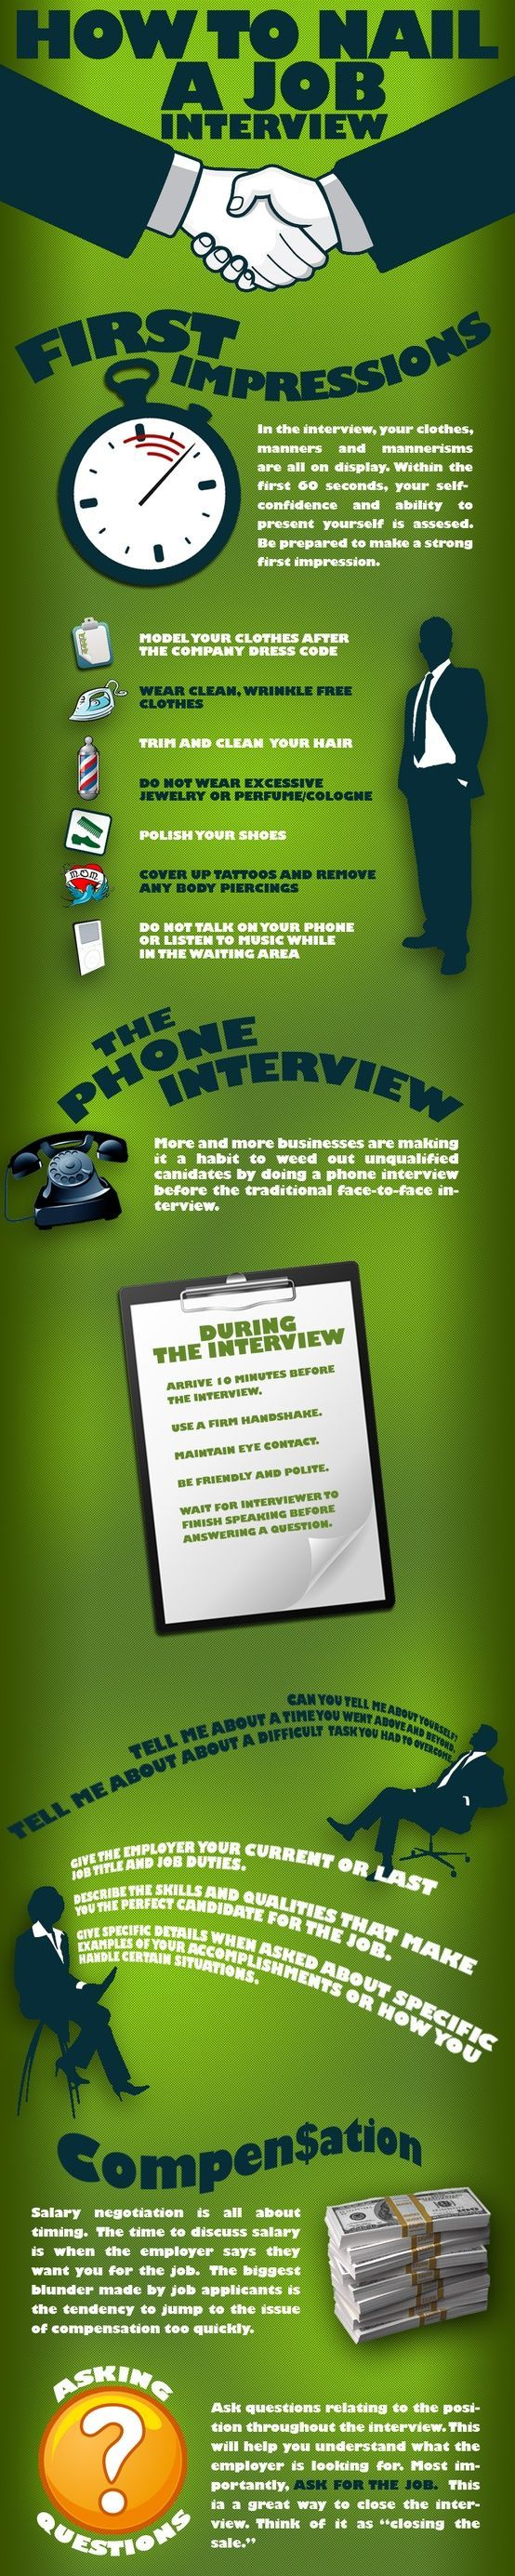 Best New Job Images On   Job Interviews Career Advice